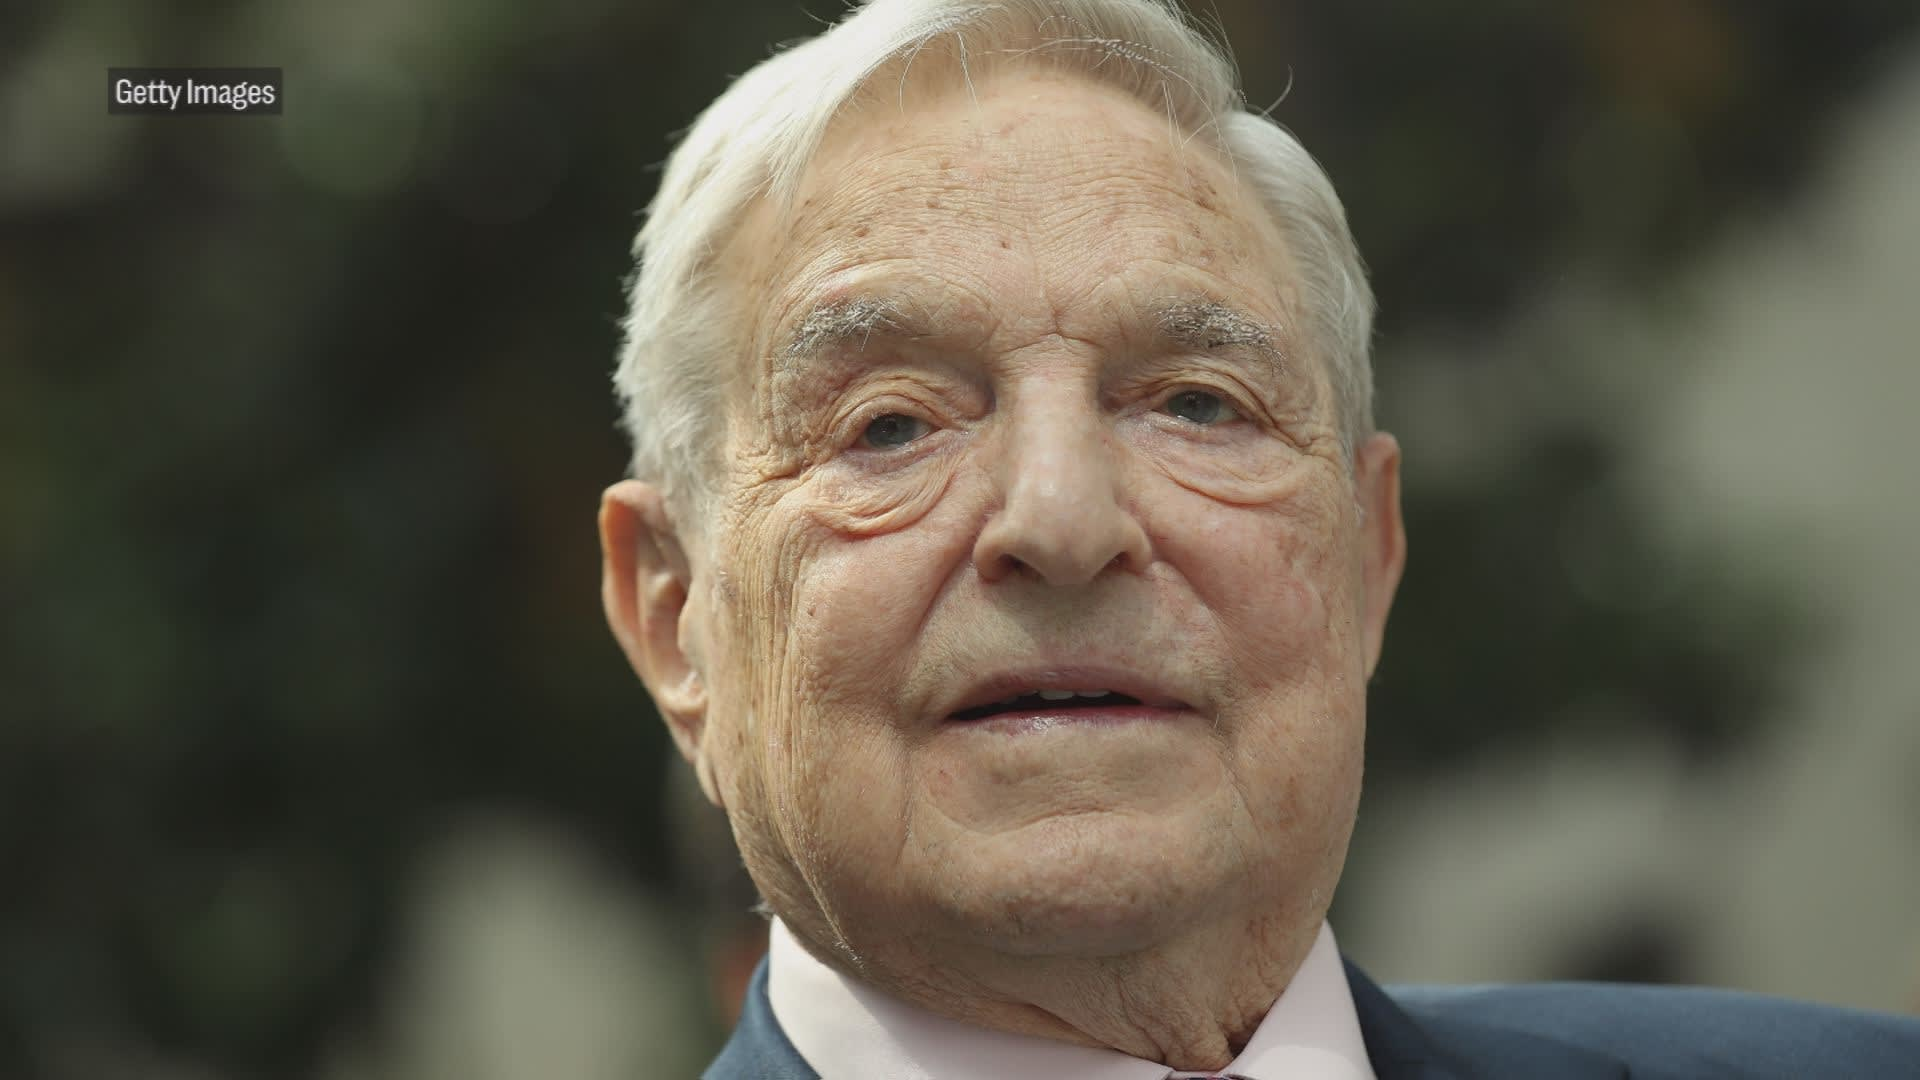 george soros prepares to trade cryptocurrencies bloomberg